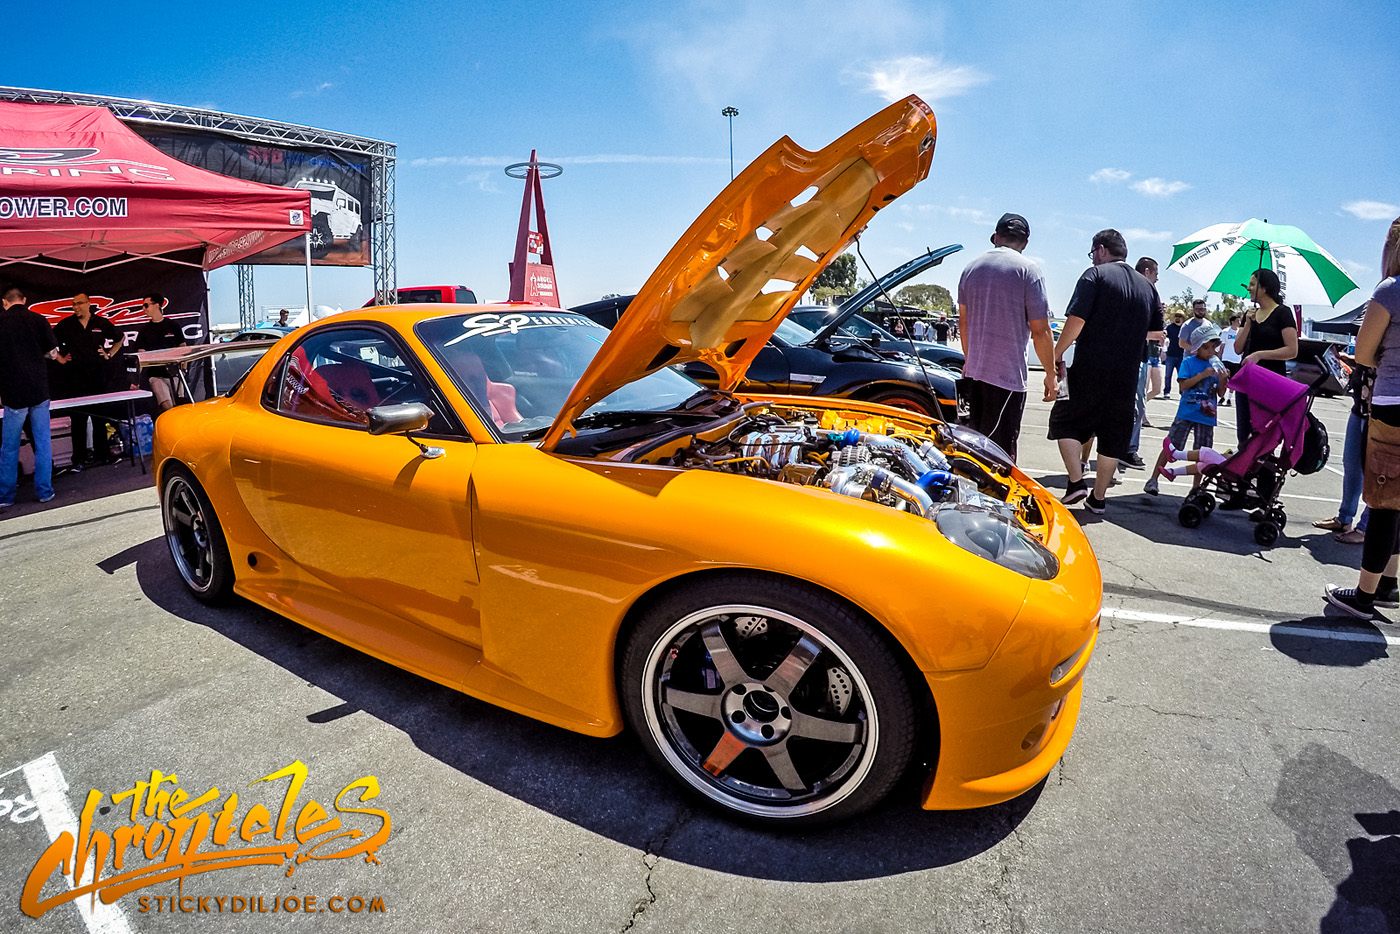 The Chronicles Vlog #12: Nitto Tire Auto Enthusiast Day…